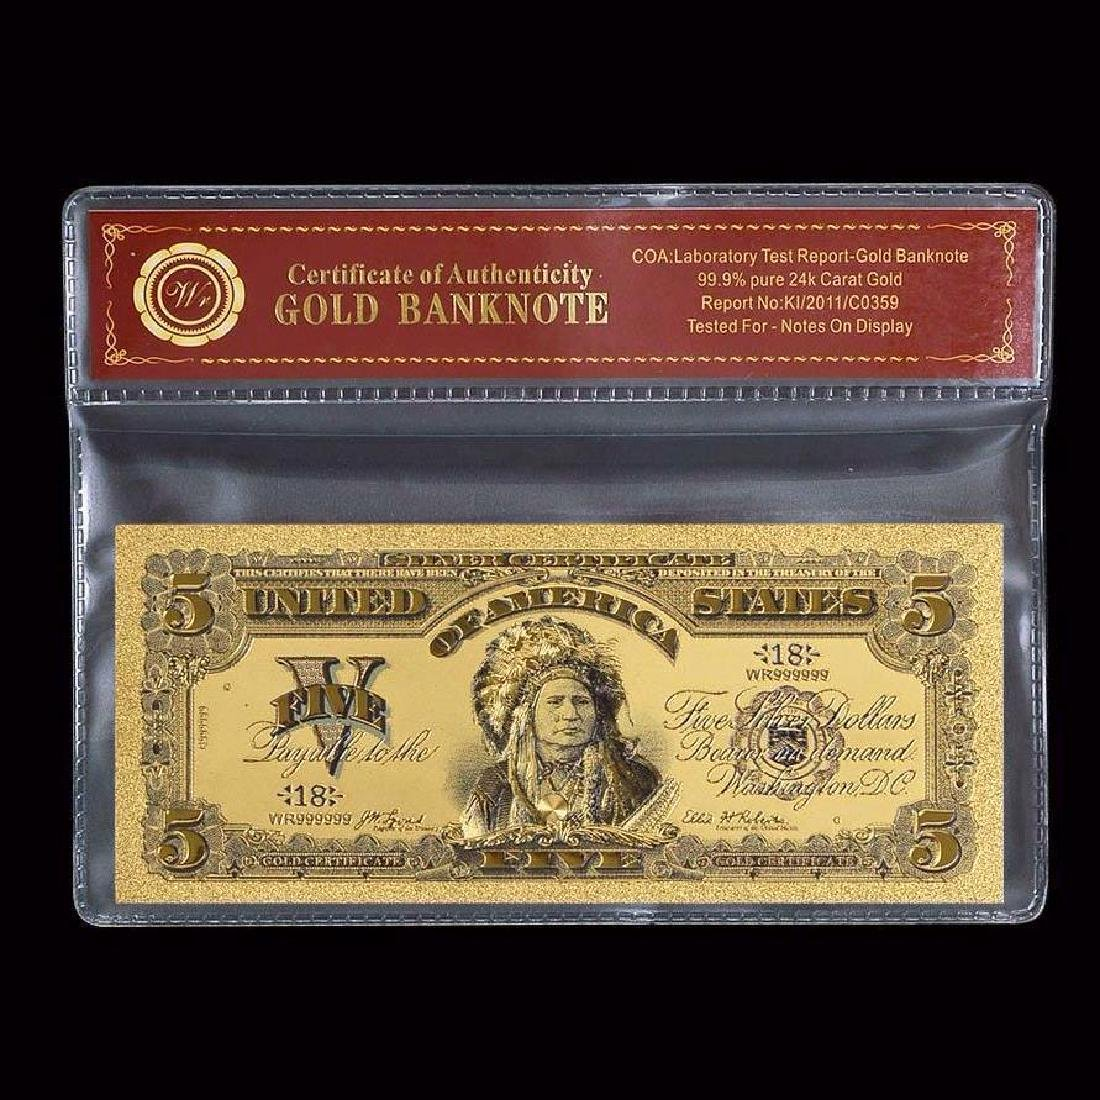 USA $5 24K Gold Clad Banknote